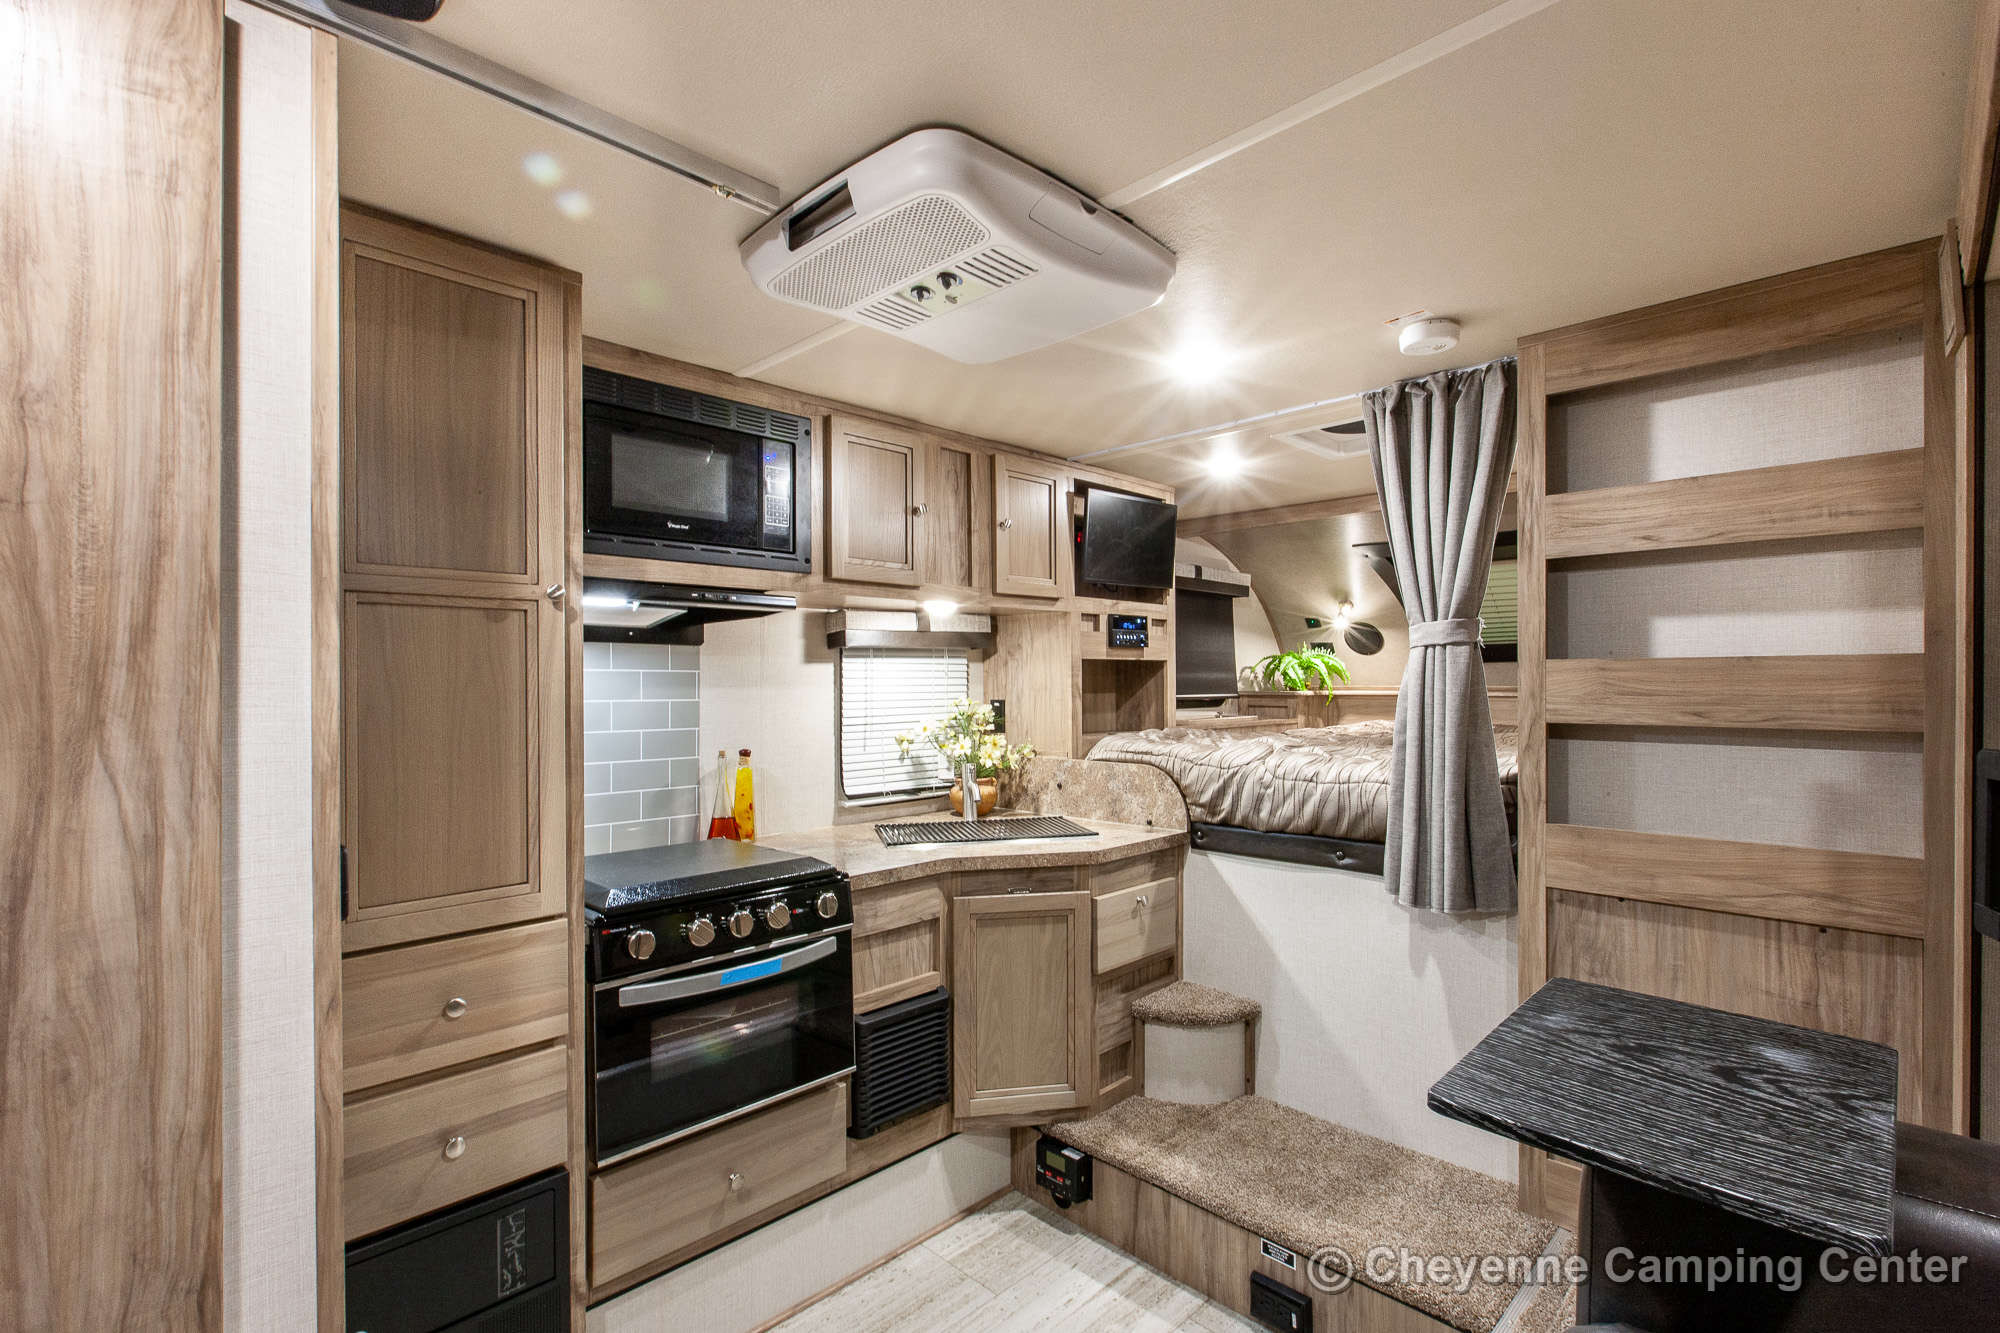 2021 Palomino BackPack HS-2910 Truck Camper Interior Image